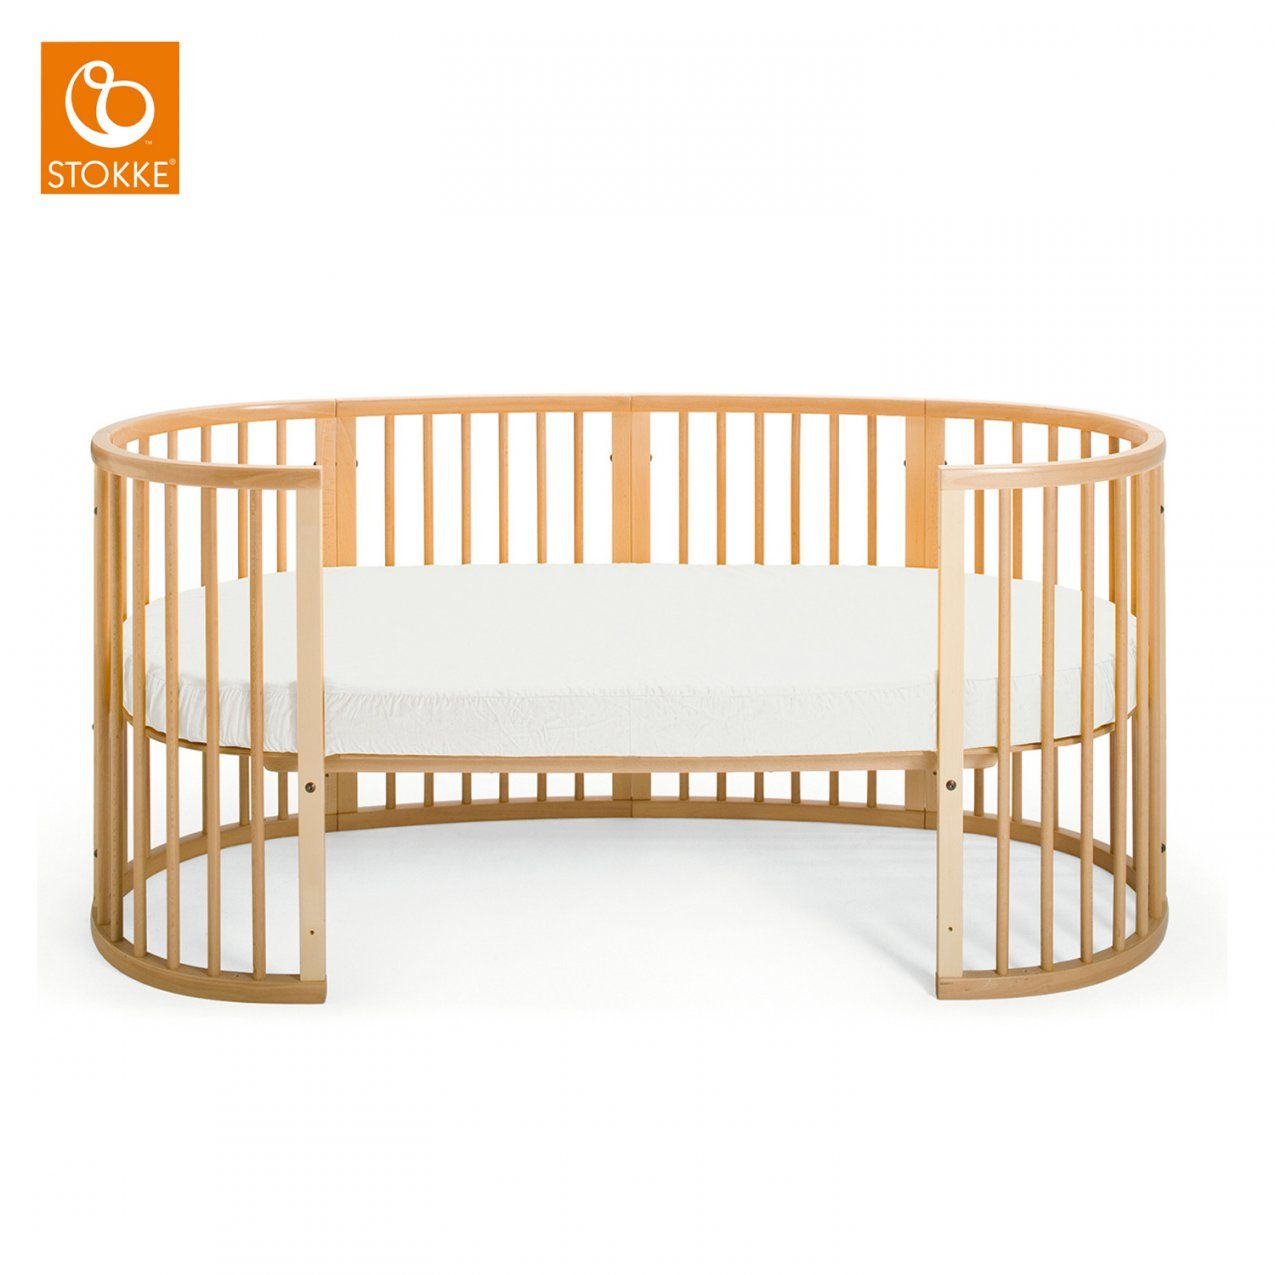 Stokke Jugendbett Sleepi Junior Natural von Stokke Sleepi Junior Matratze Bild